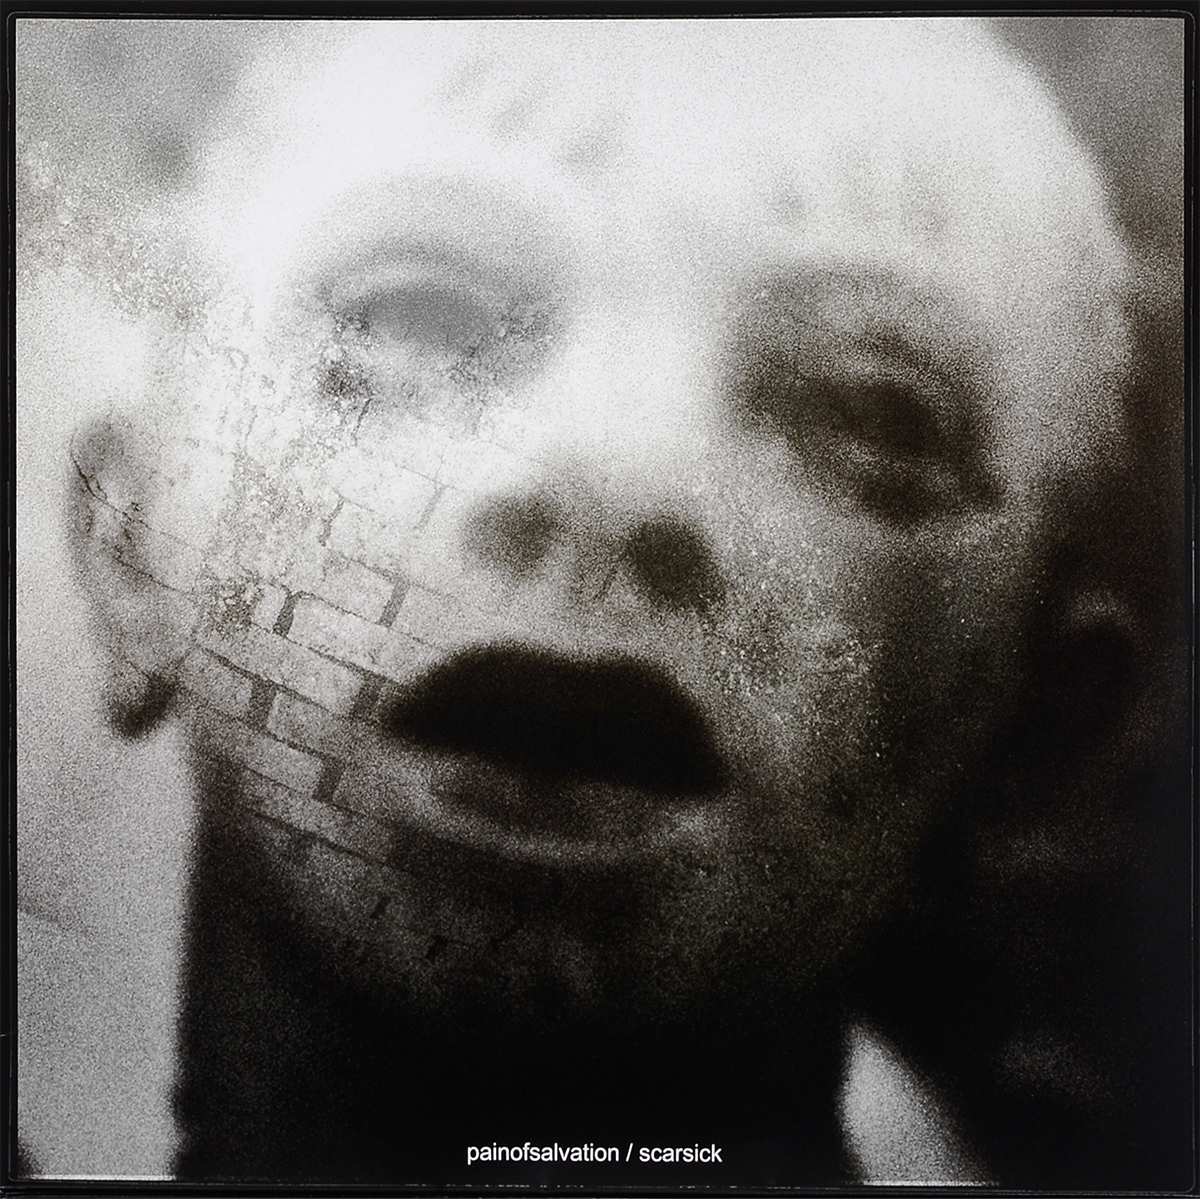 Pain Of Salvation Pain Of Salvation. Scarsick (2 LP + CD) ending themes on the two deaths of pain of salvation limited edition 2 dvd 2 cd